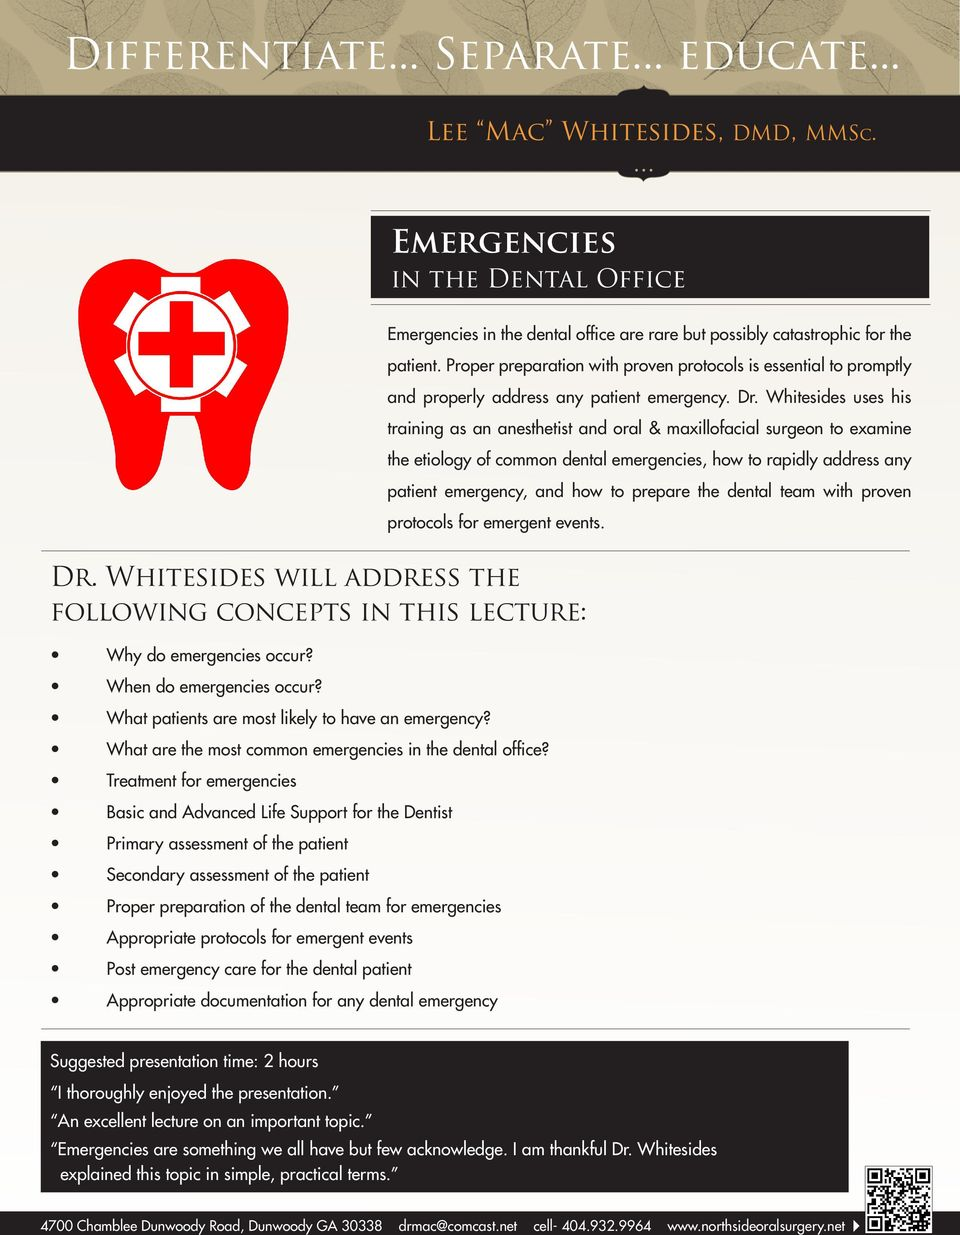 Whitesides uses his training as an anesthetist and oral & maxillofacial surgeon to examine the etiology of common dental emergencies, how to rapidly address any patient emergency, and how to prepare